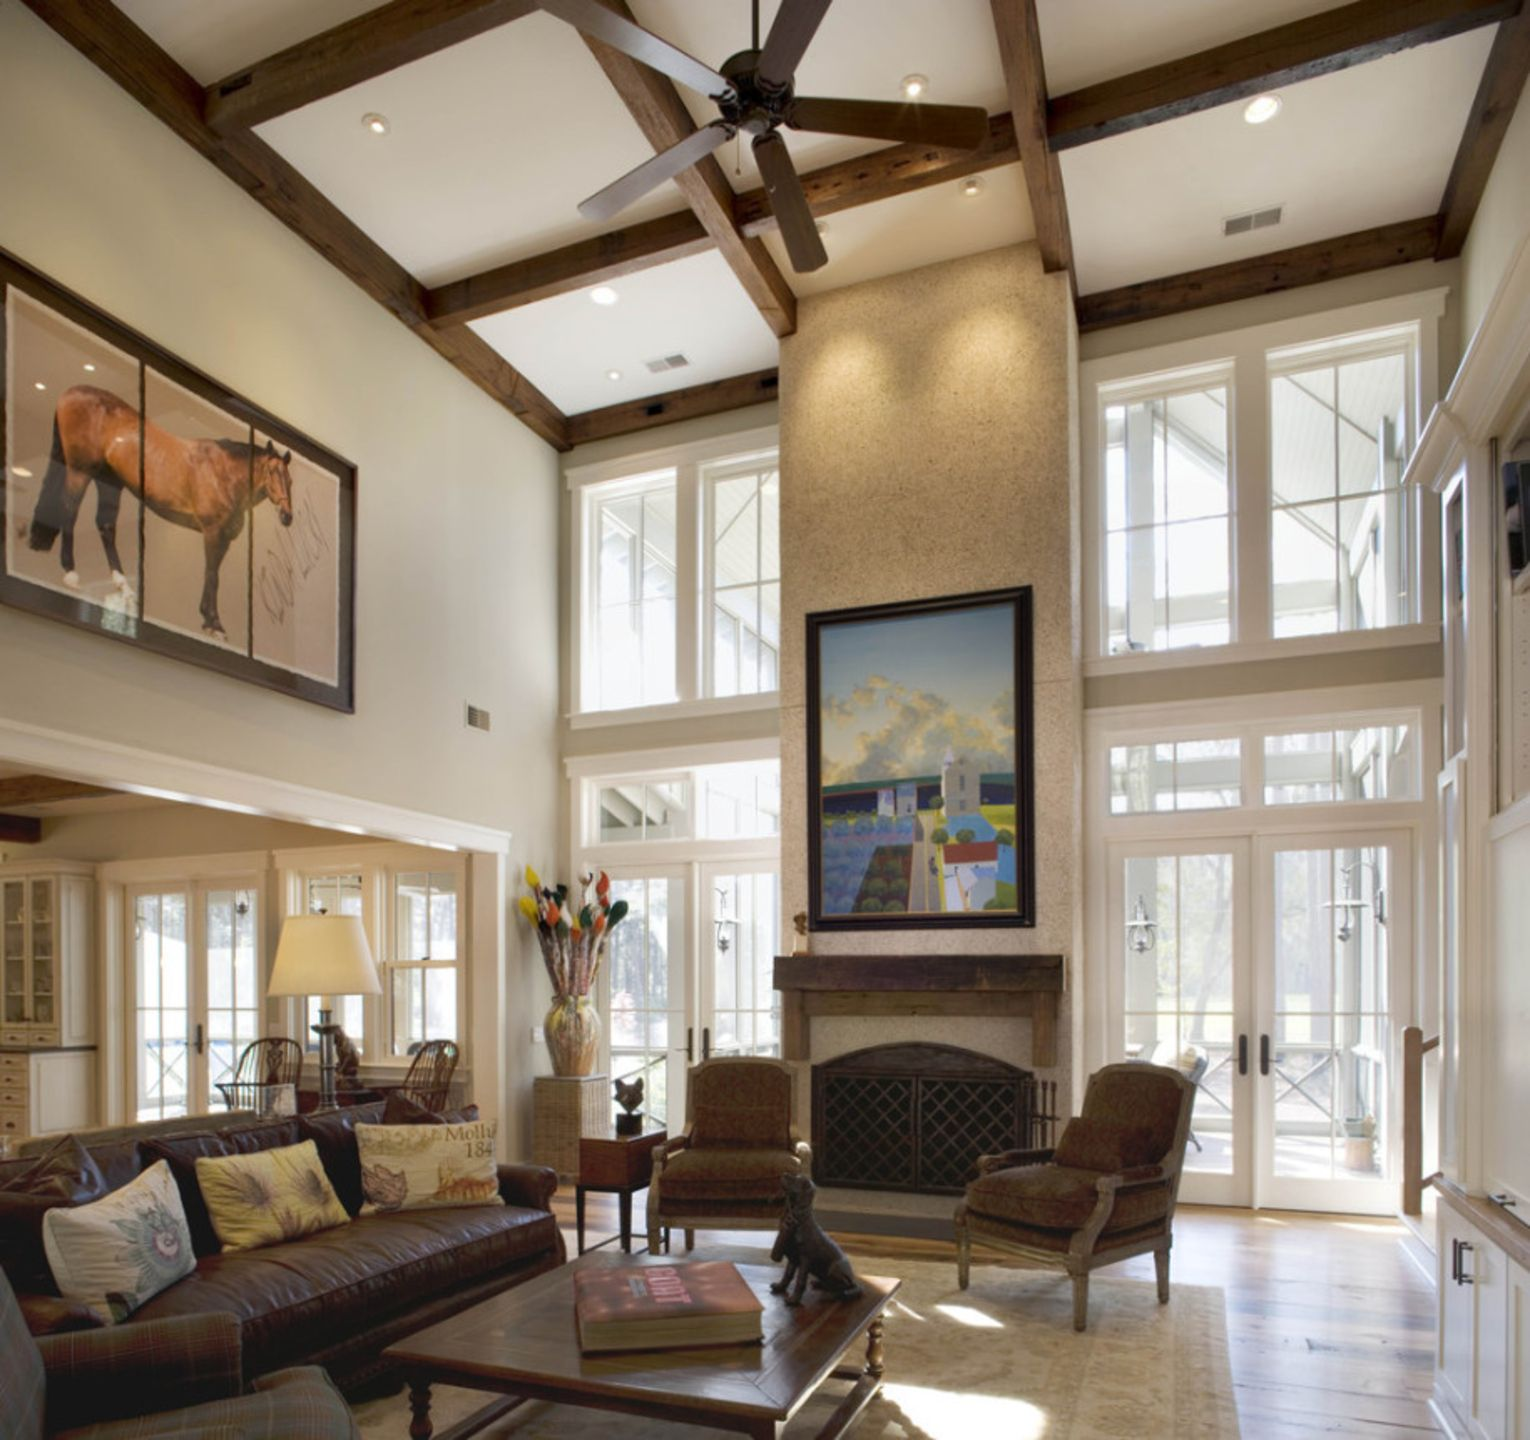 High Ceiling Decorating Ideas: Living Room Design High Ceiling As Room Design Ideas With